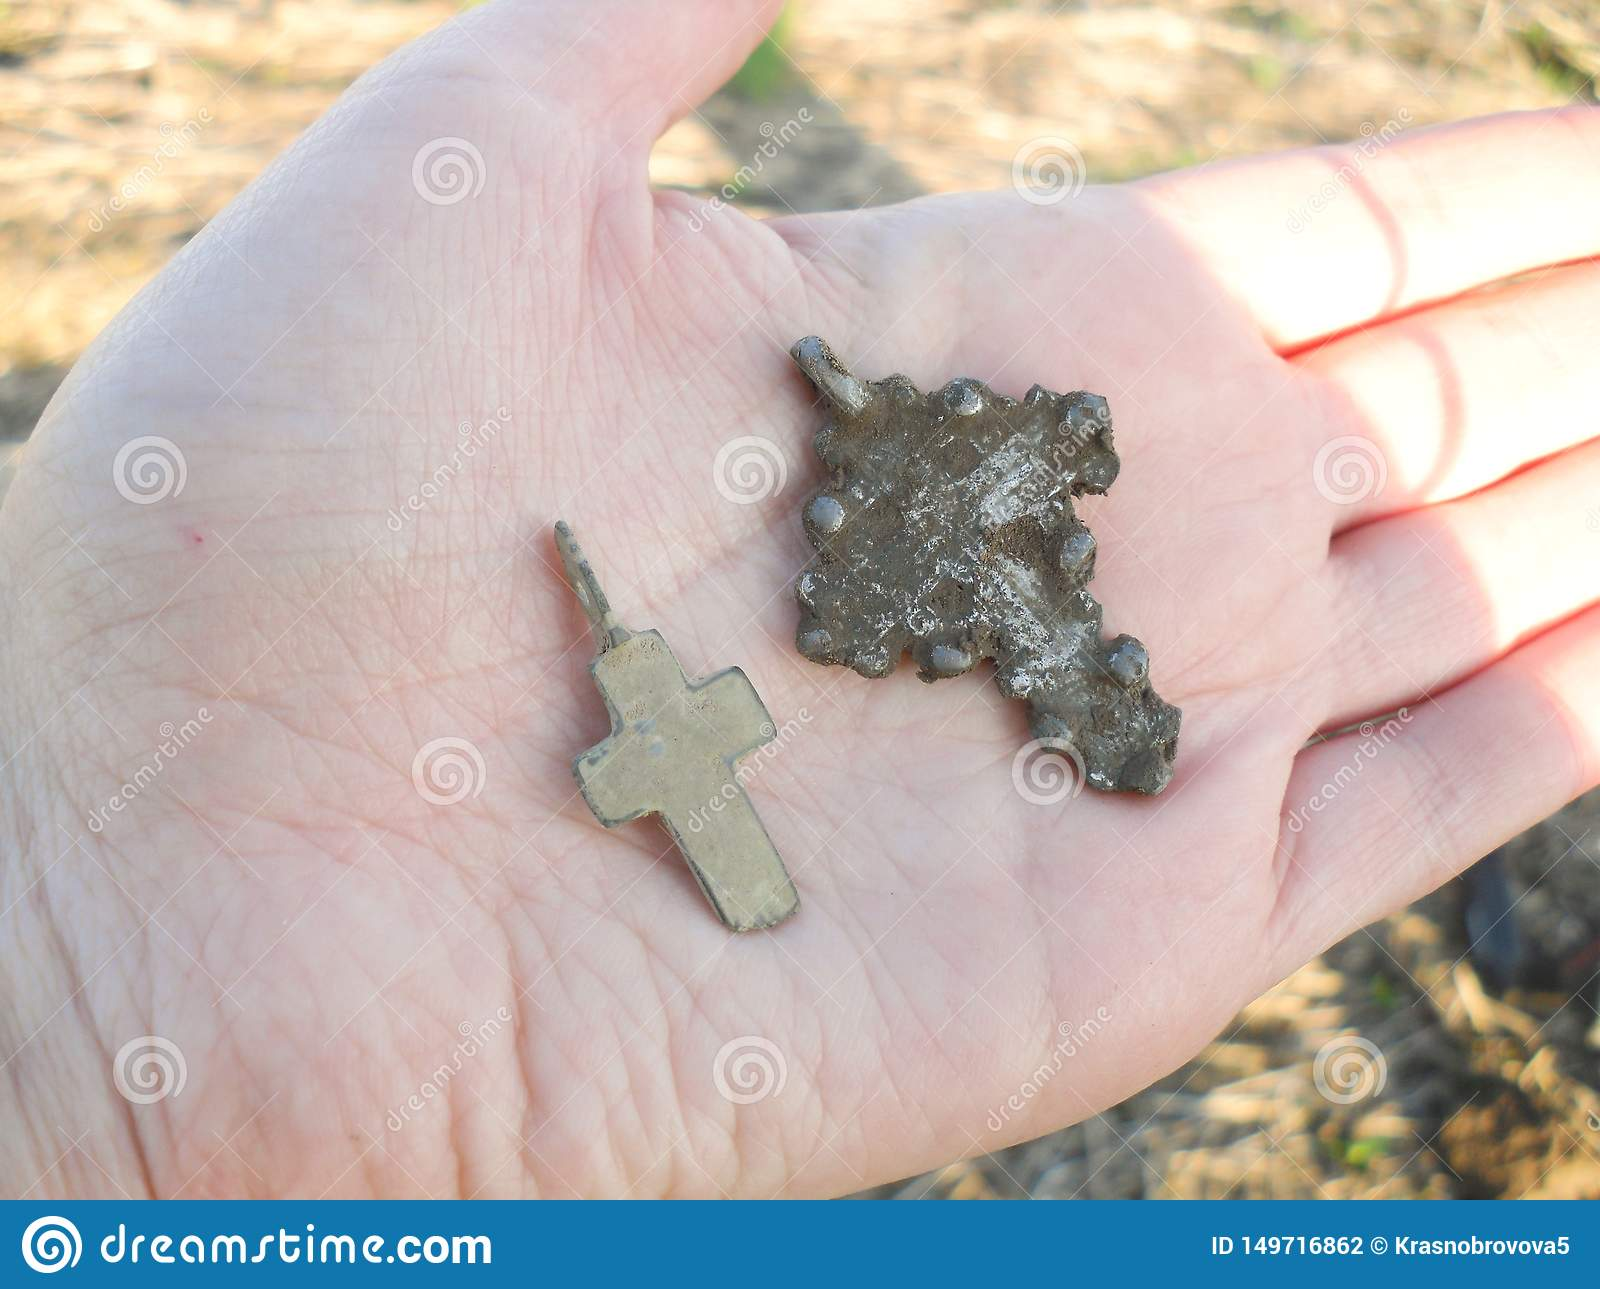 Silver cross in hand found while metal detecting